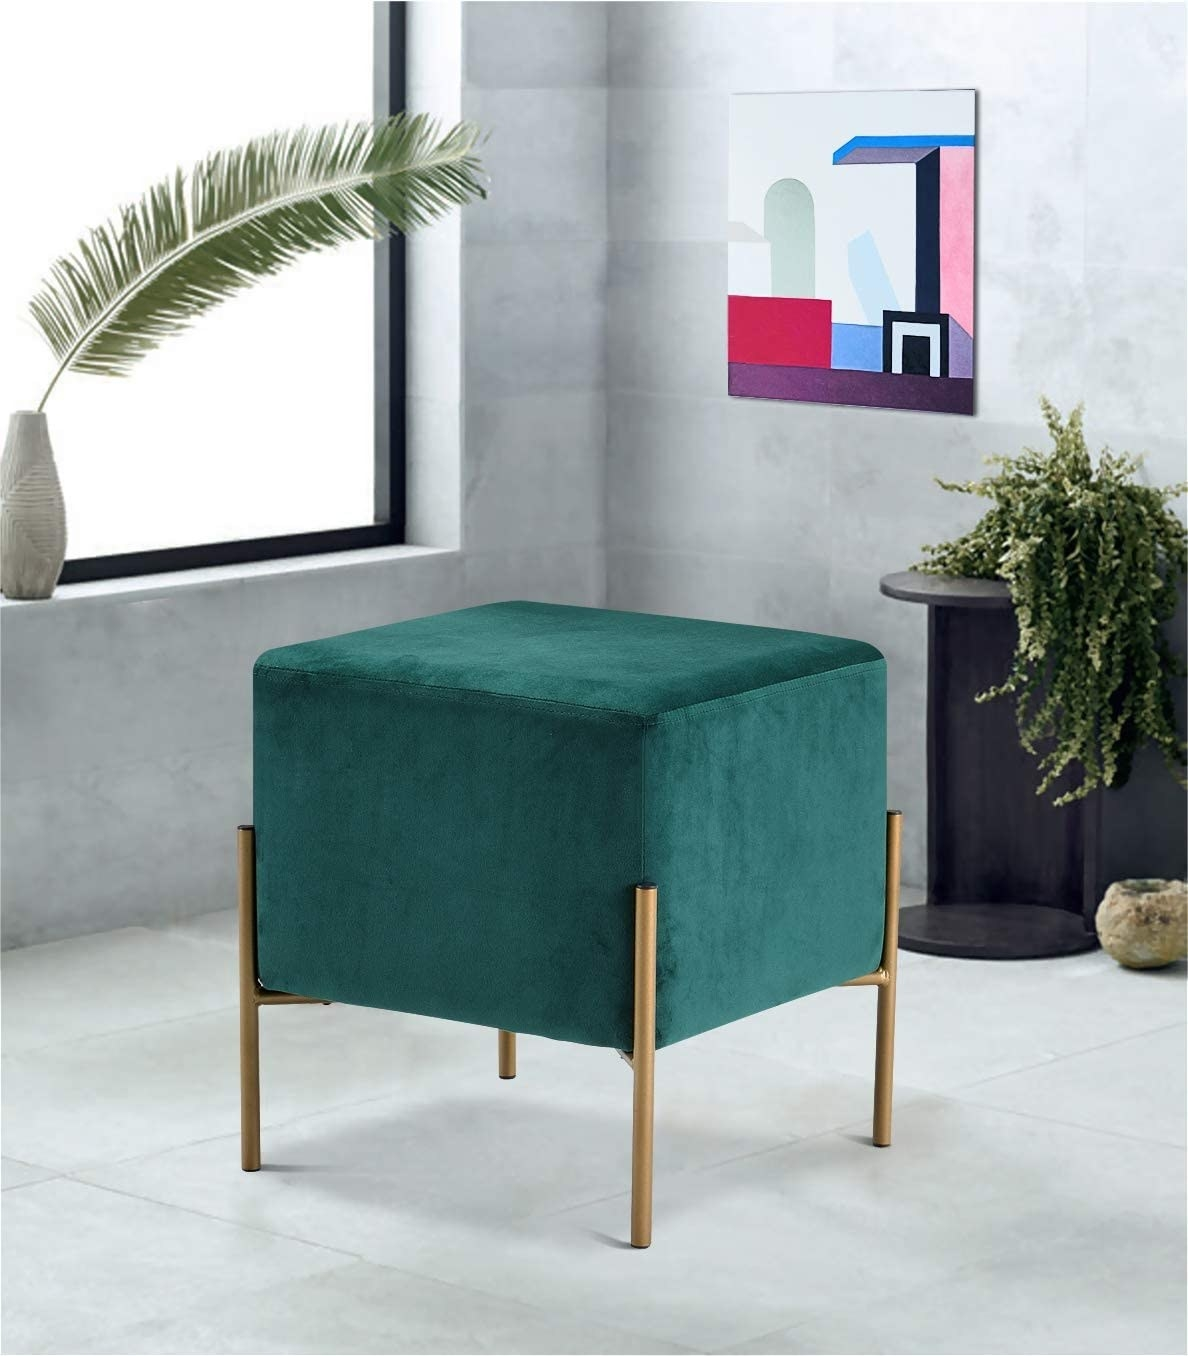 A square-shaped ottoman that fits into sleek gold leg frames